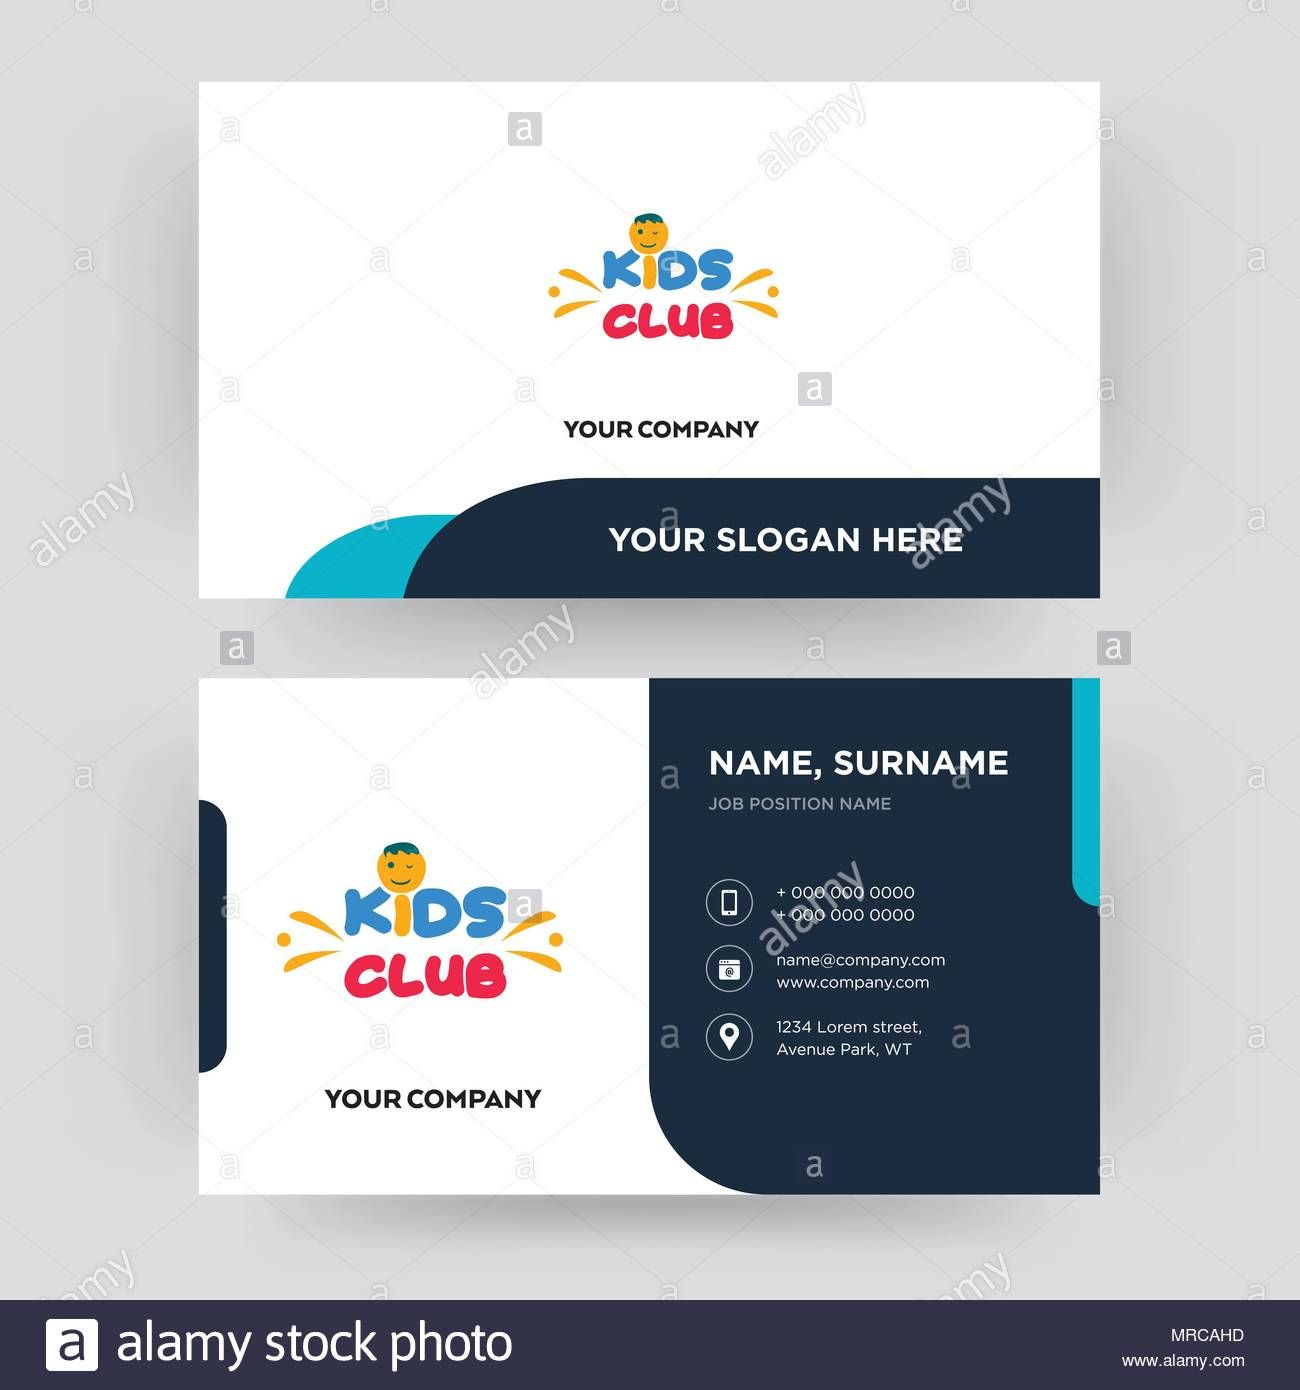 Kids Club Business Card Design Template Visiting For Your Within Id Card Template For Kid Business Card Template Design Id Card Template Business Card Design